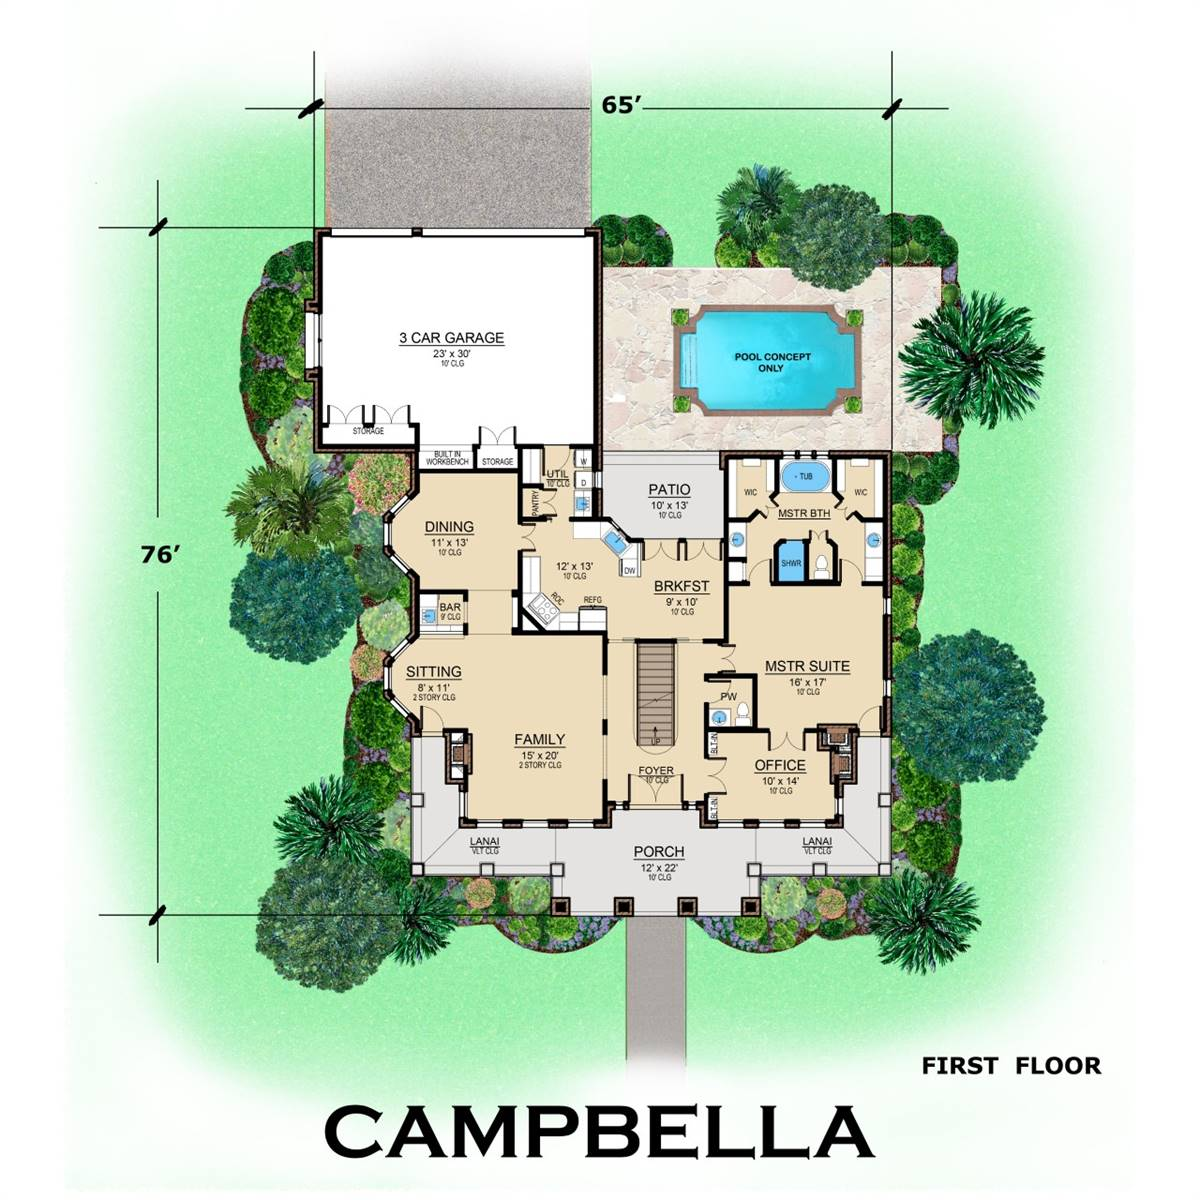 1st Floor image of Campbella House Plan